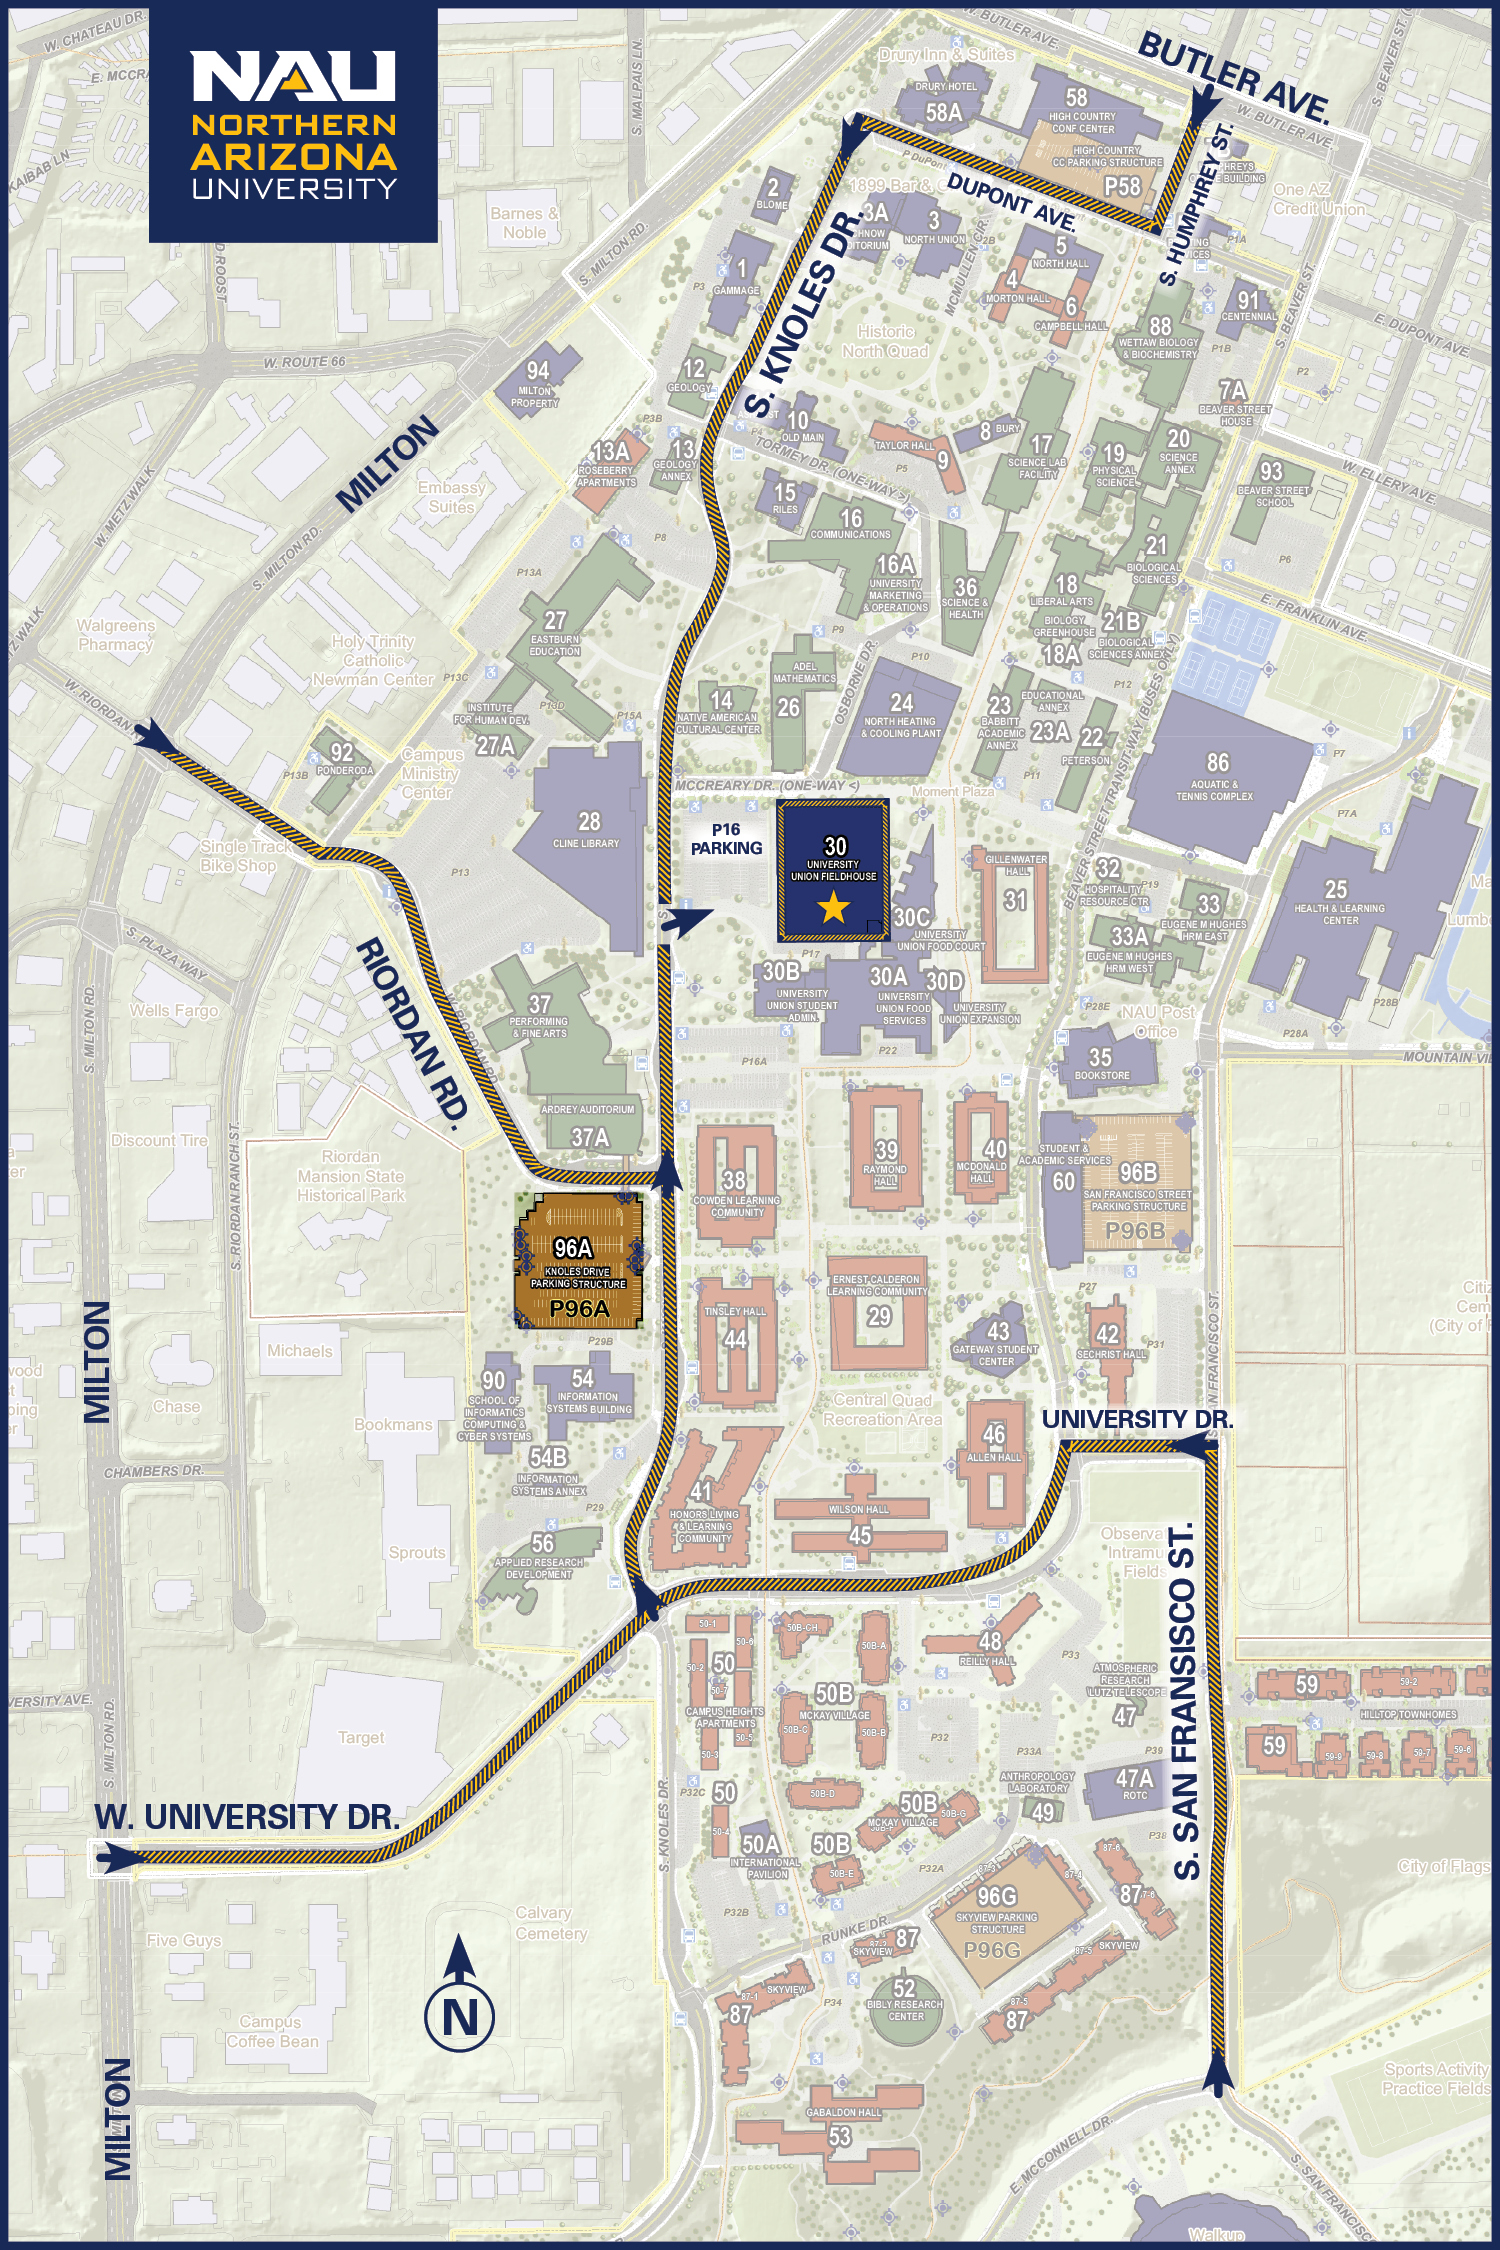 Map to get to NAU Fieldhouse